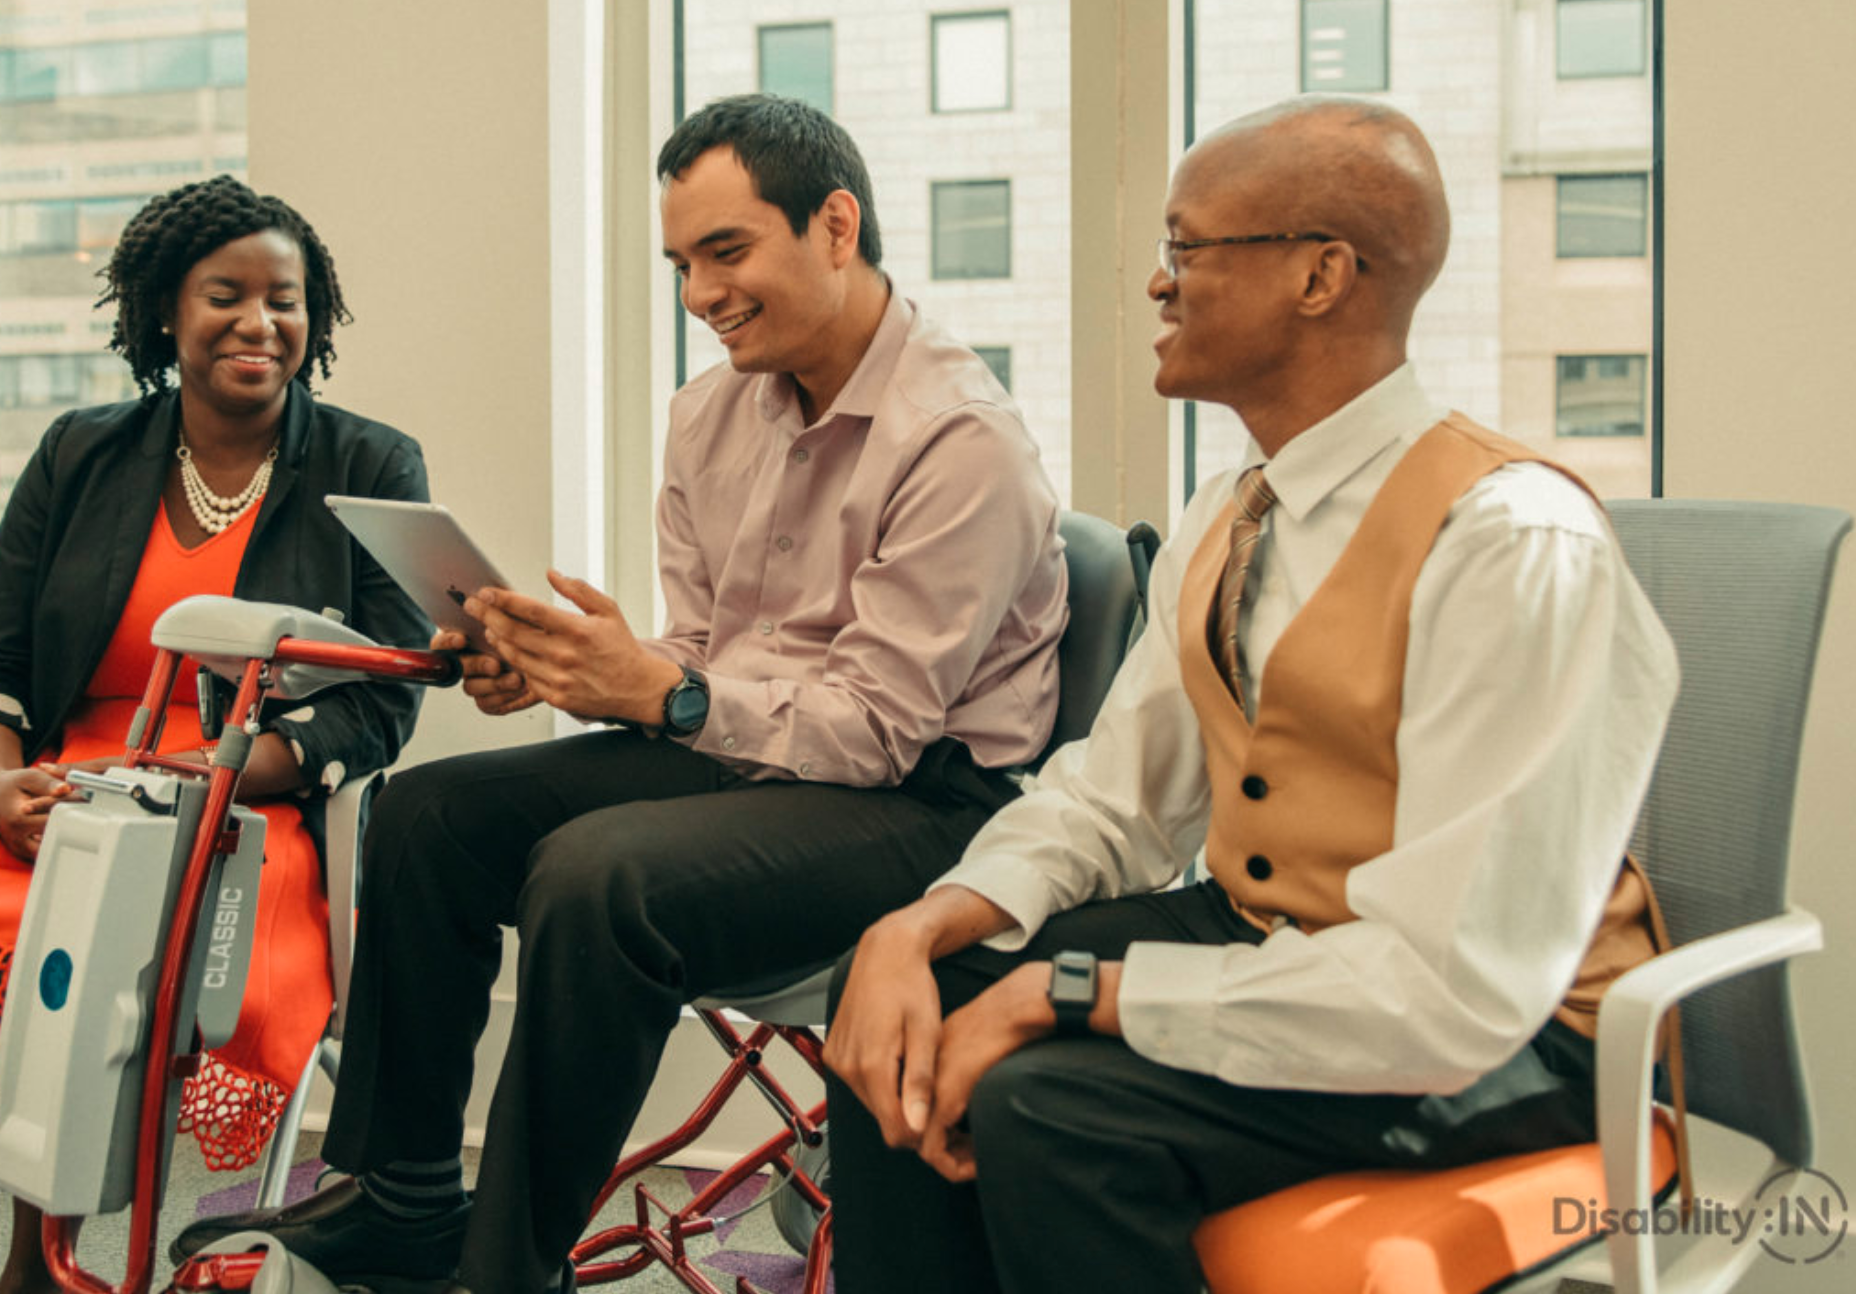 Stock photo of 3 people in a business setting, one woman, a man on a power wheelchair using an iPad, and another man on the r